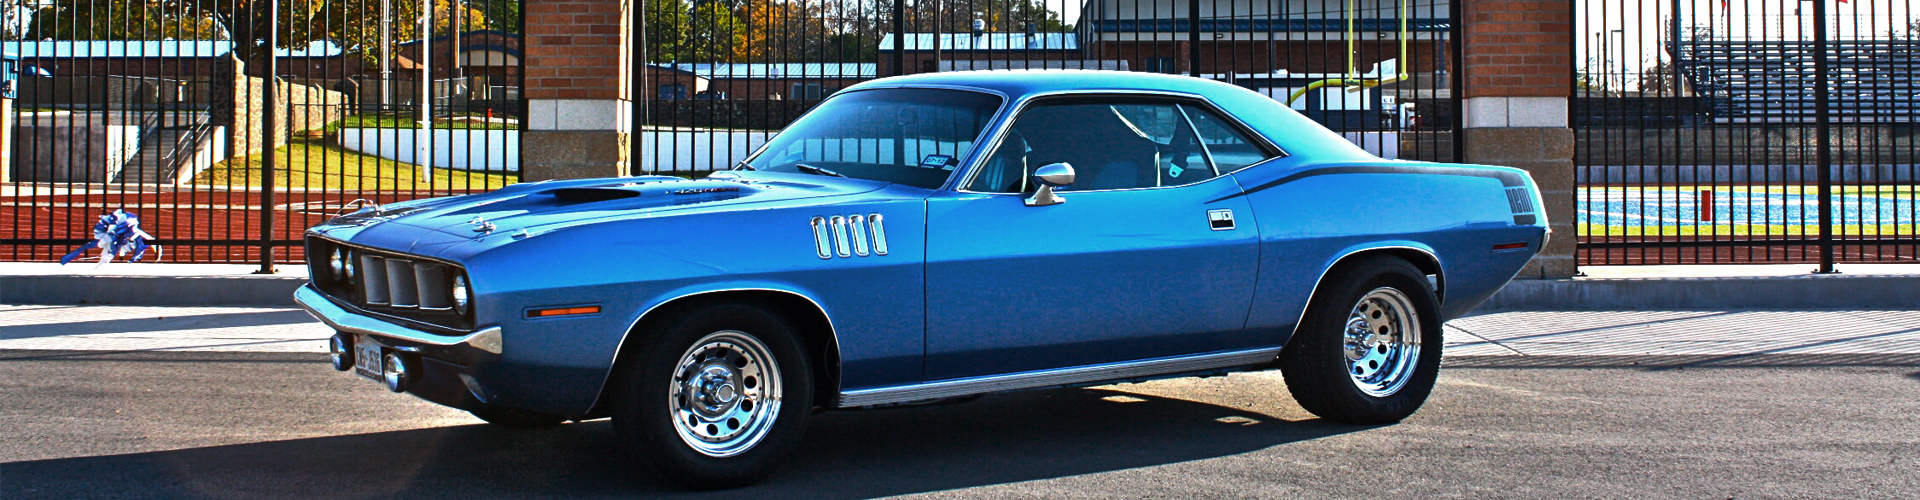 great american classics and muscle cars for sale car dealer in lindale tx. Black Bedroom Furniture Sets. Home Design Ideas